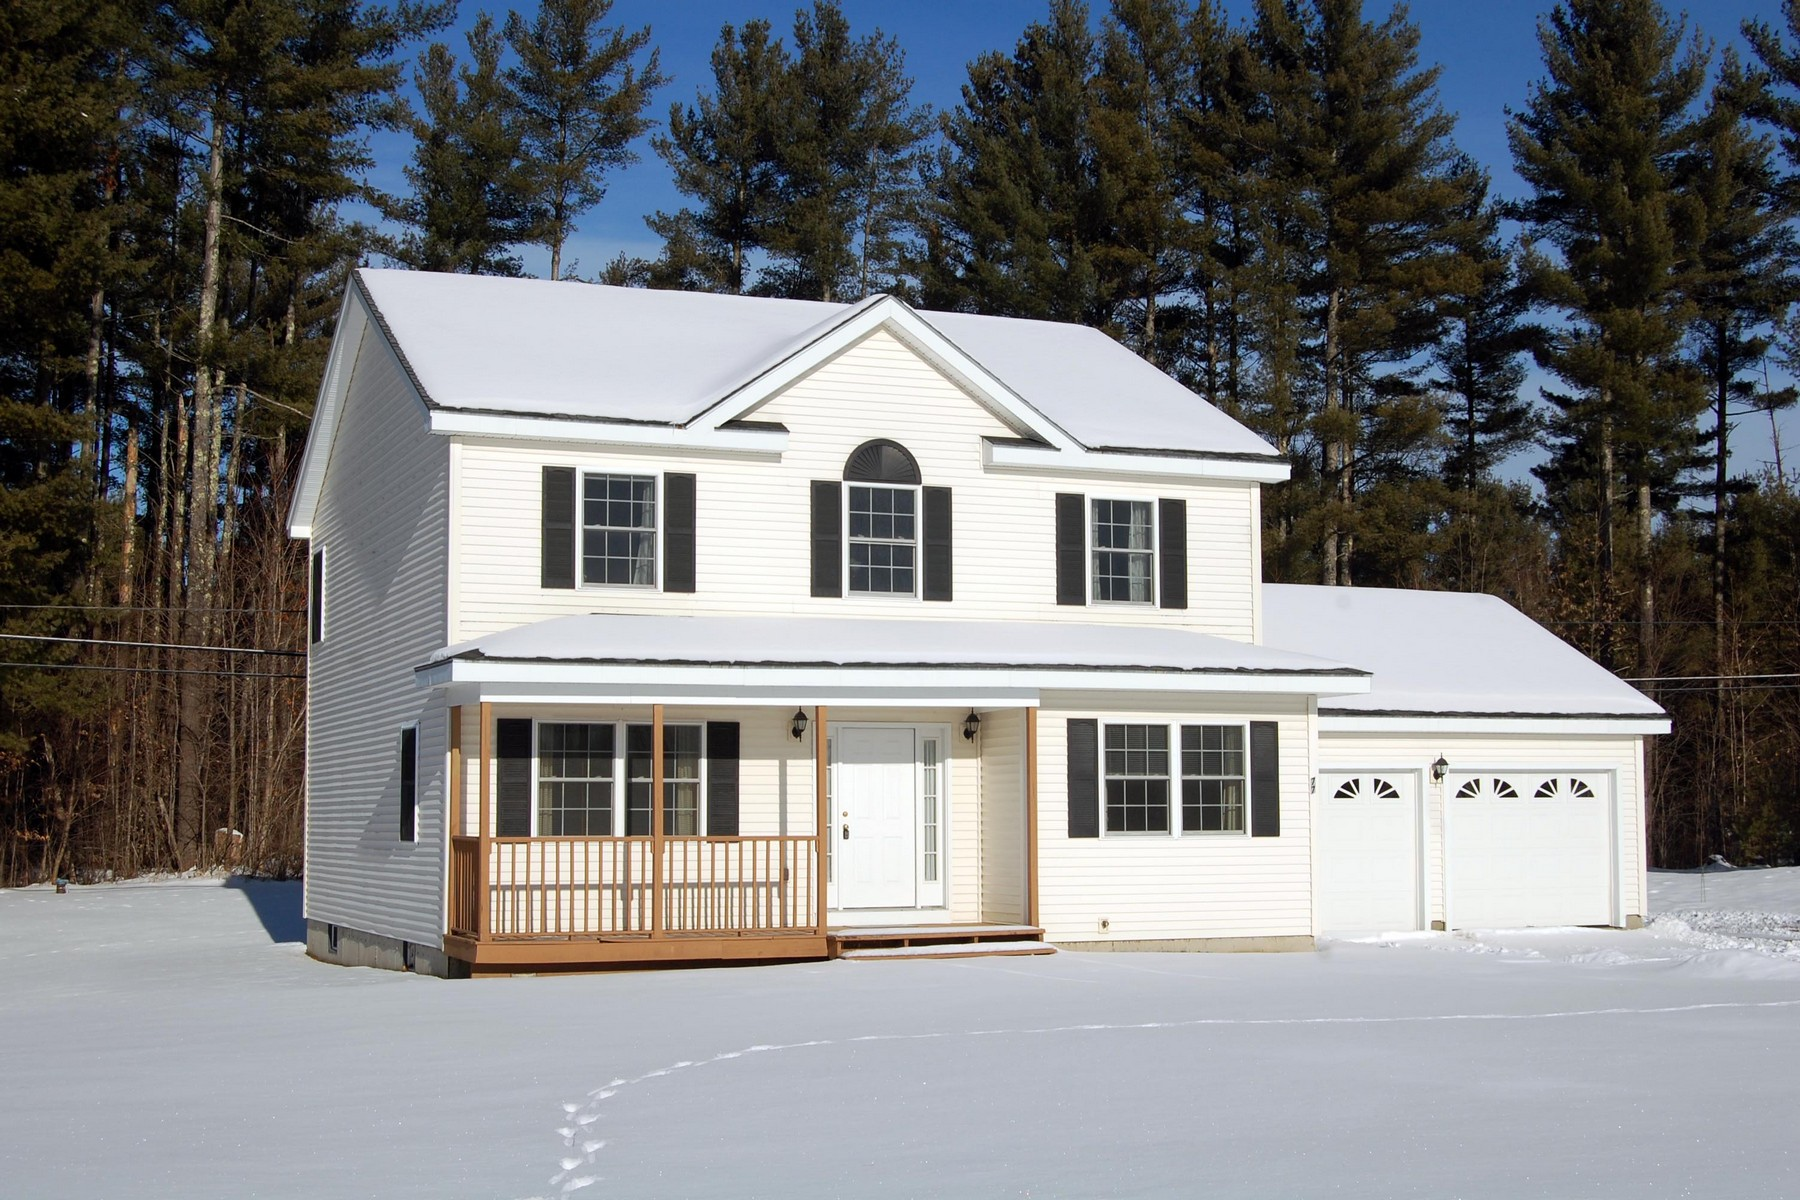 Single Family Home for Sale at 77 Adam Court, Johnson 77 Adam Ct Johnson, Vermont 05656 United States